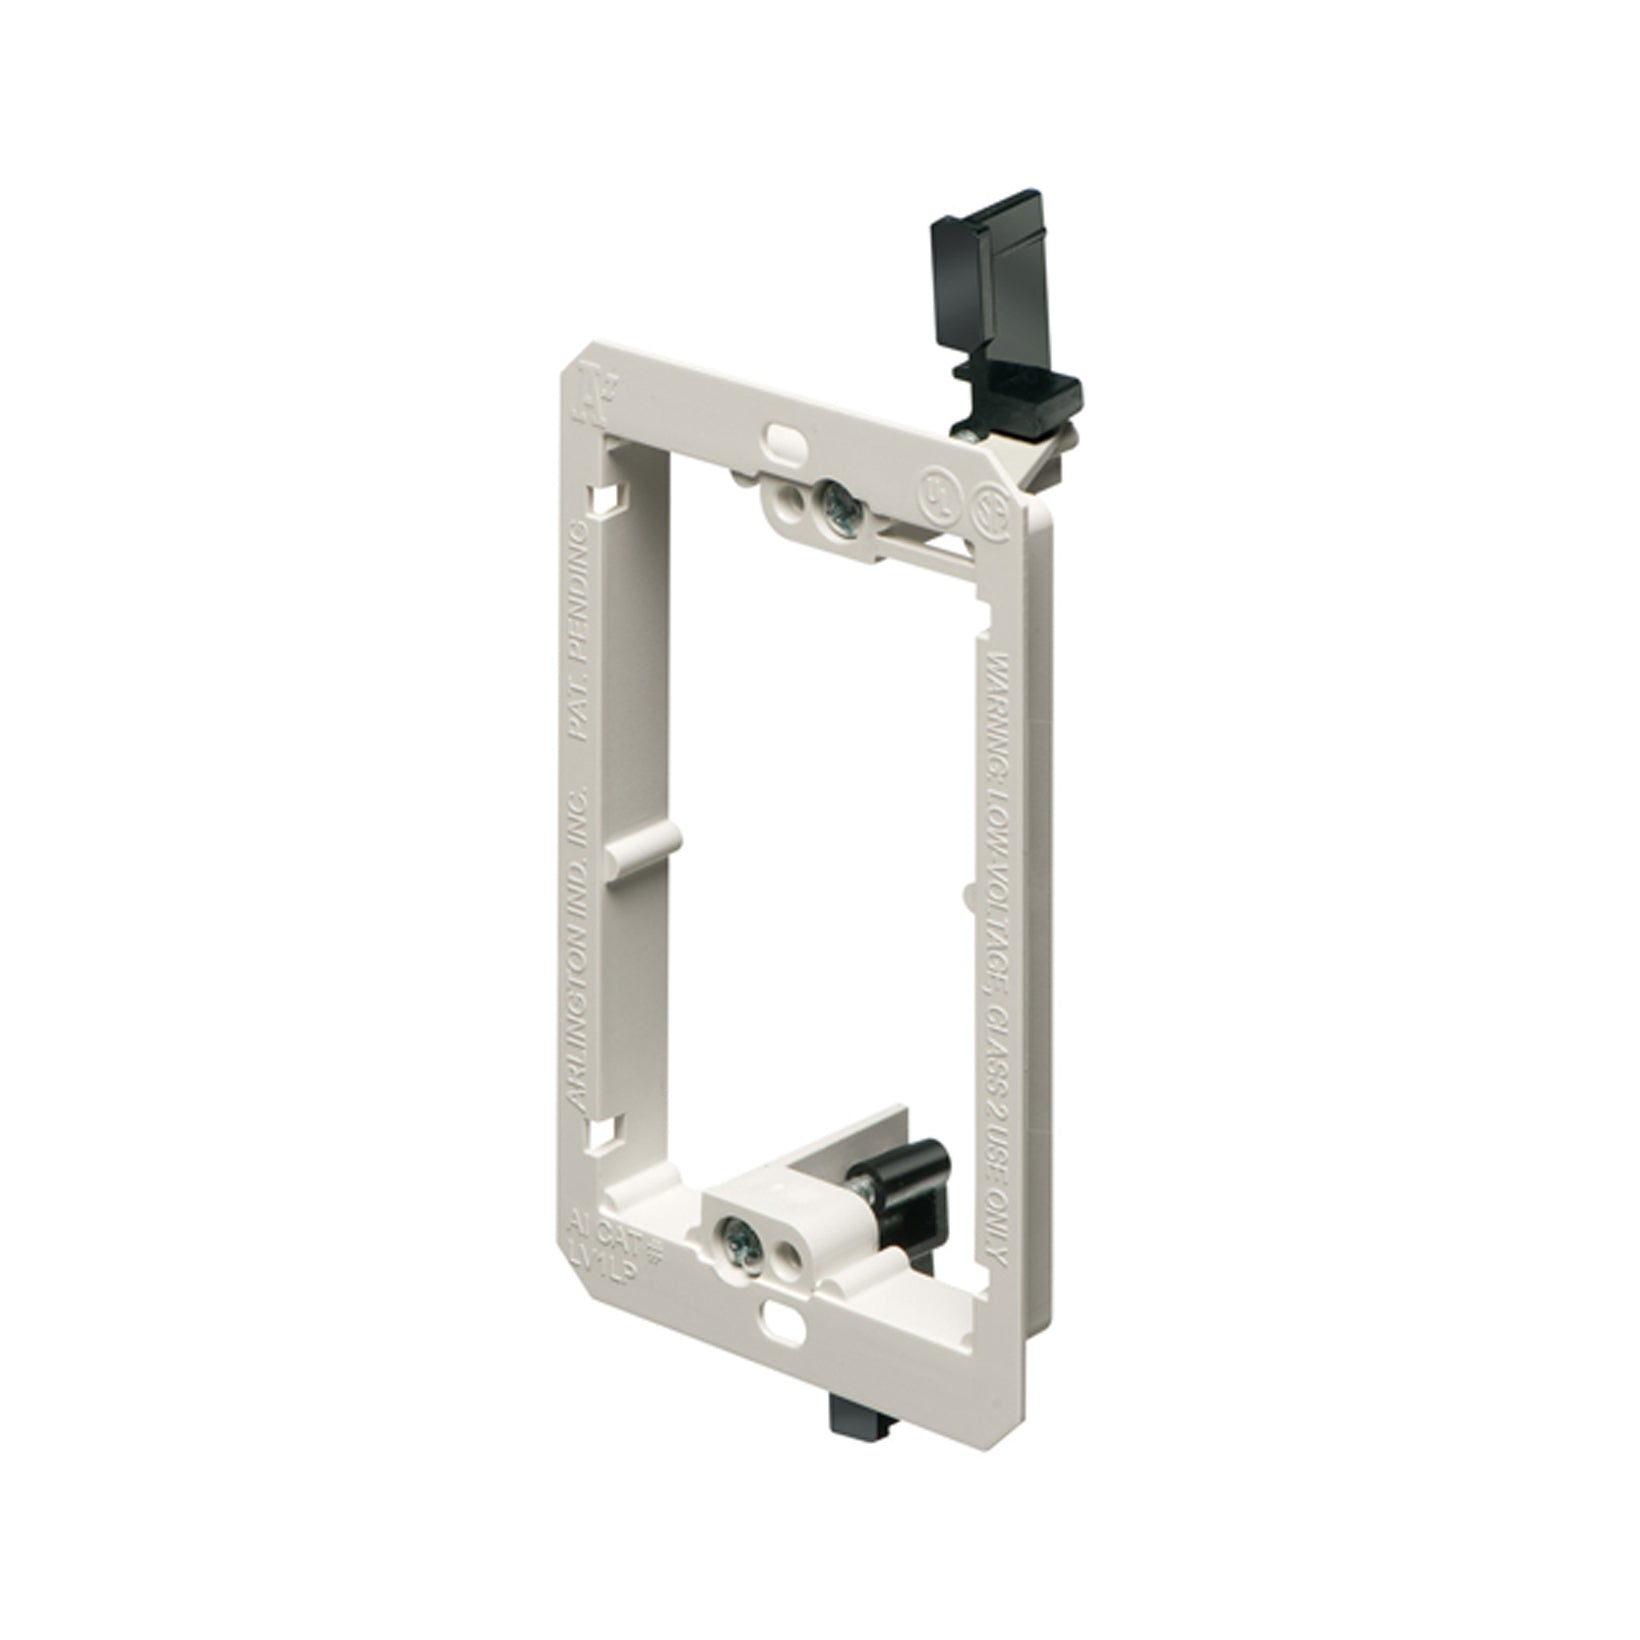 Arlington LV1LP / LV2LP /  Low Voltage Mounting Bracket, Non-Metallic. White